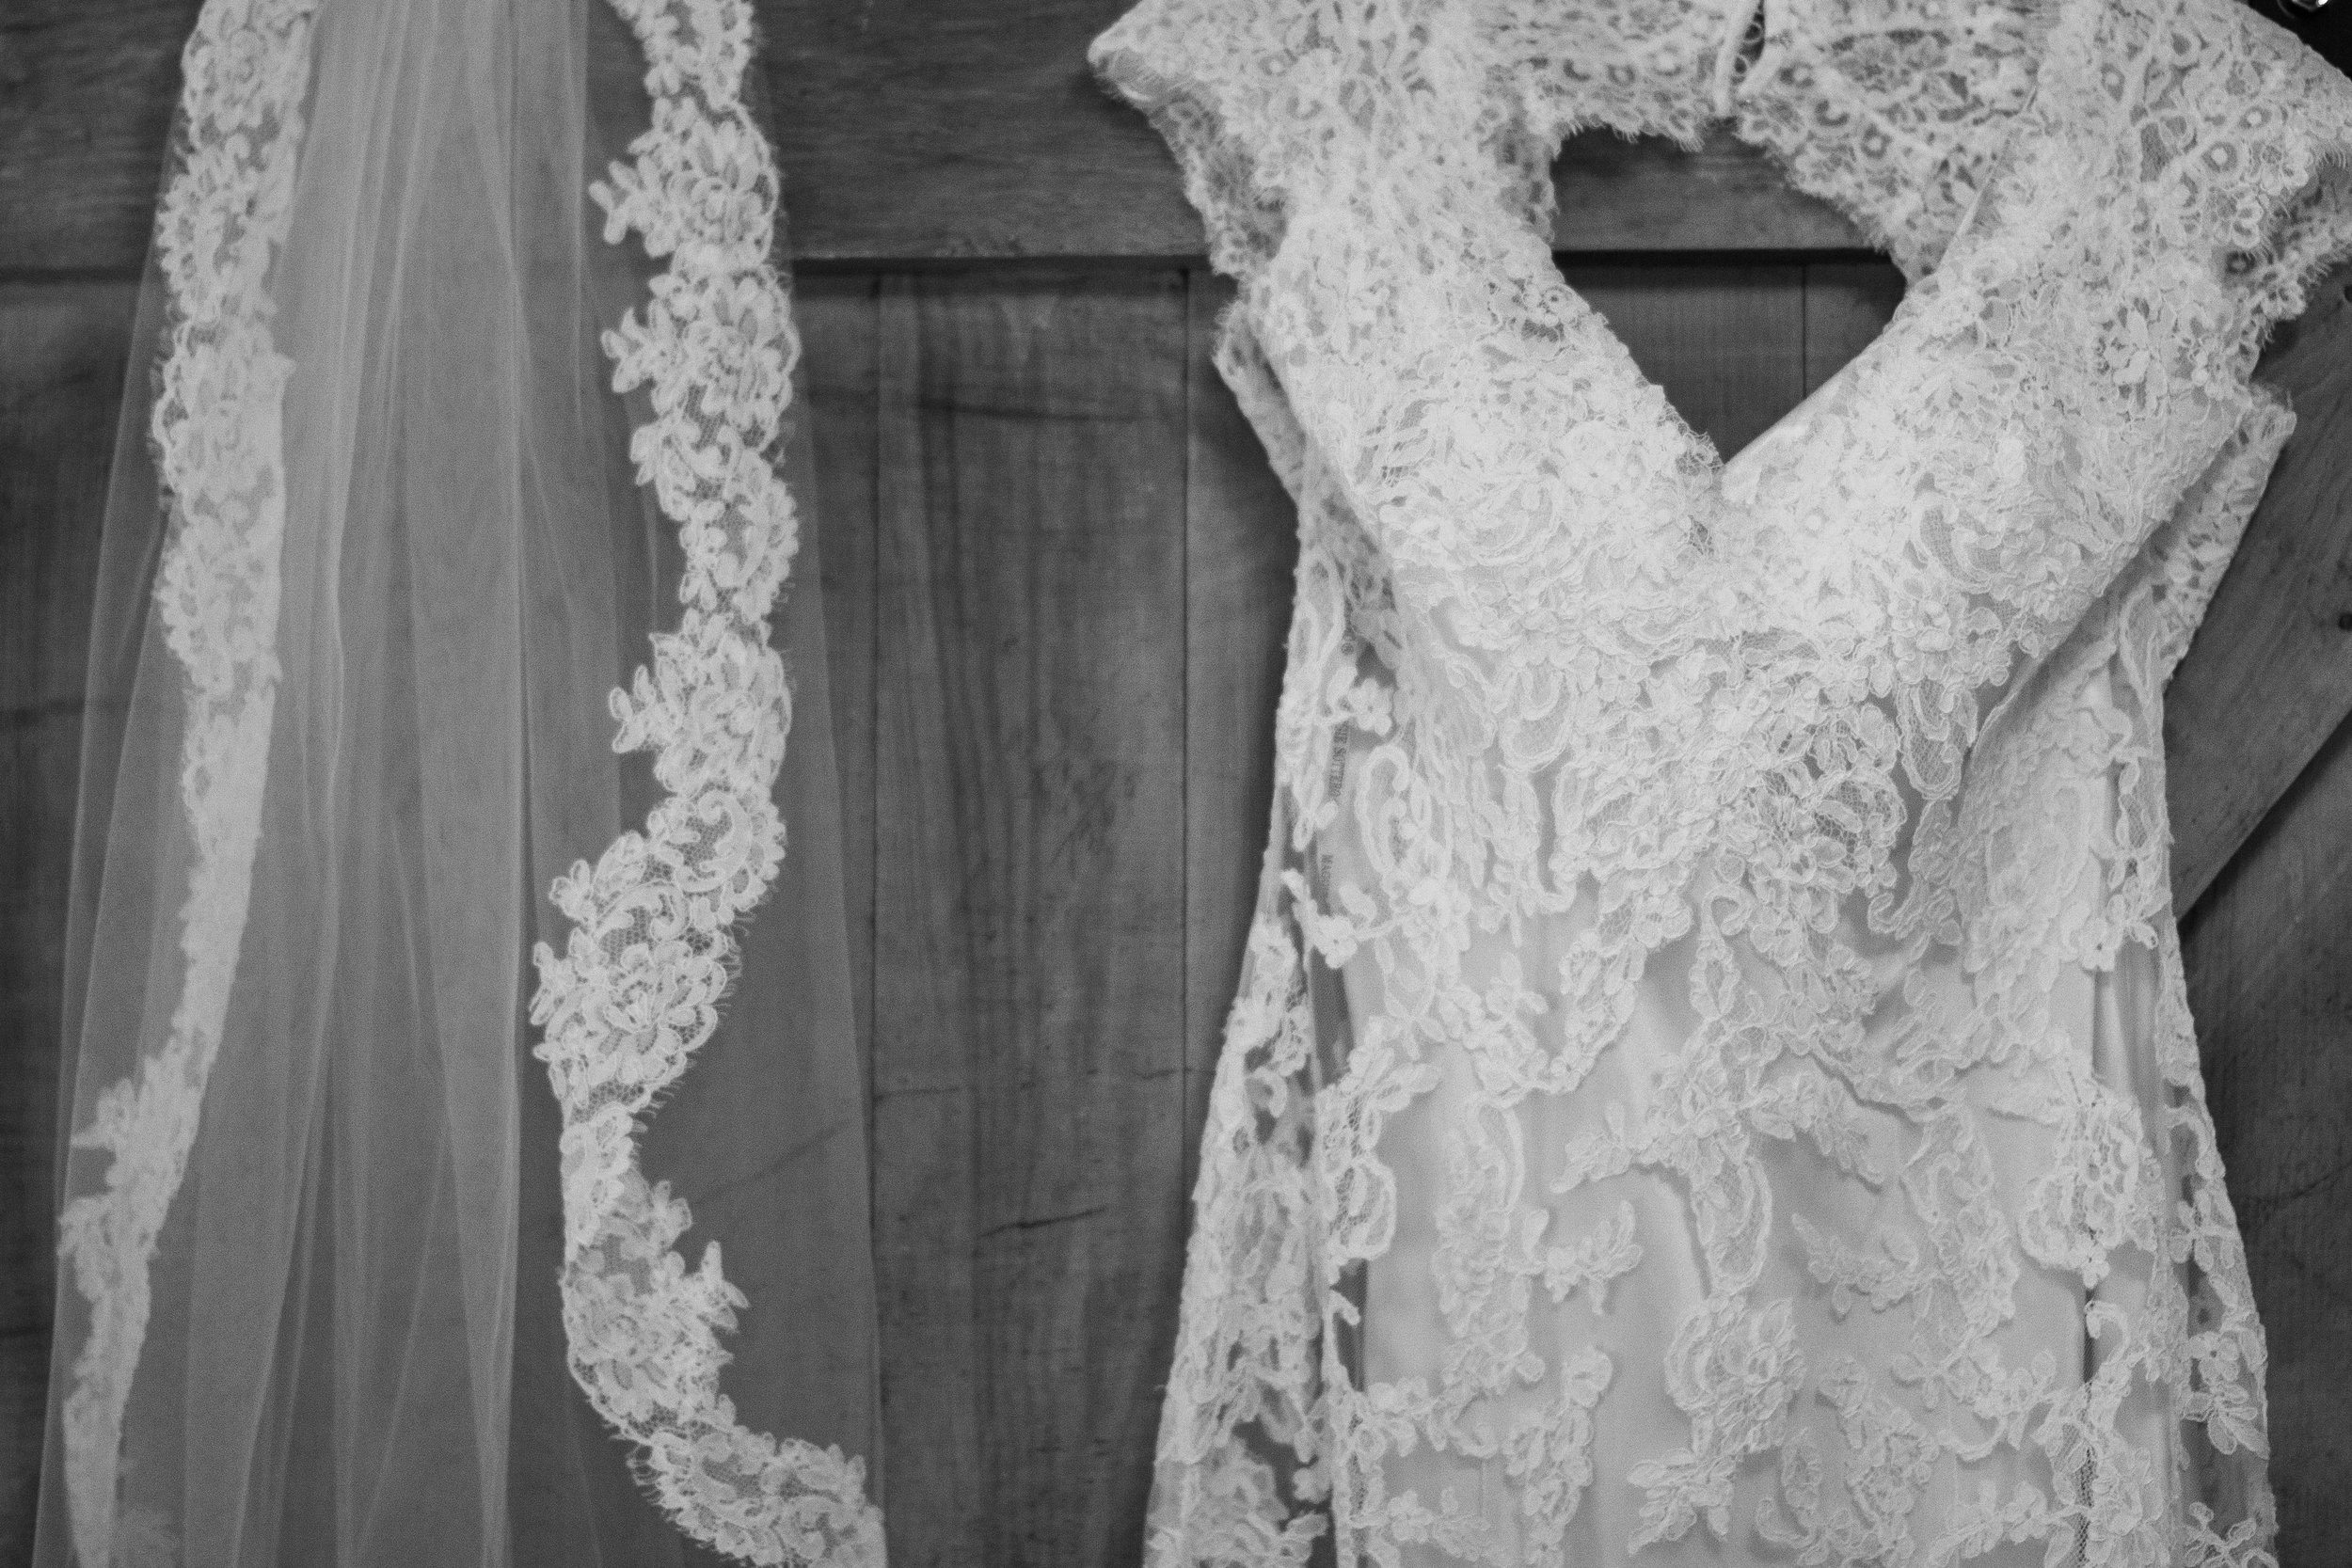 Jacqueline and Shawn Wedding (122 of 597).jpg